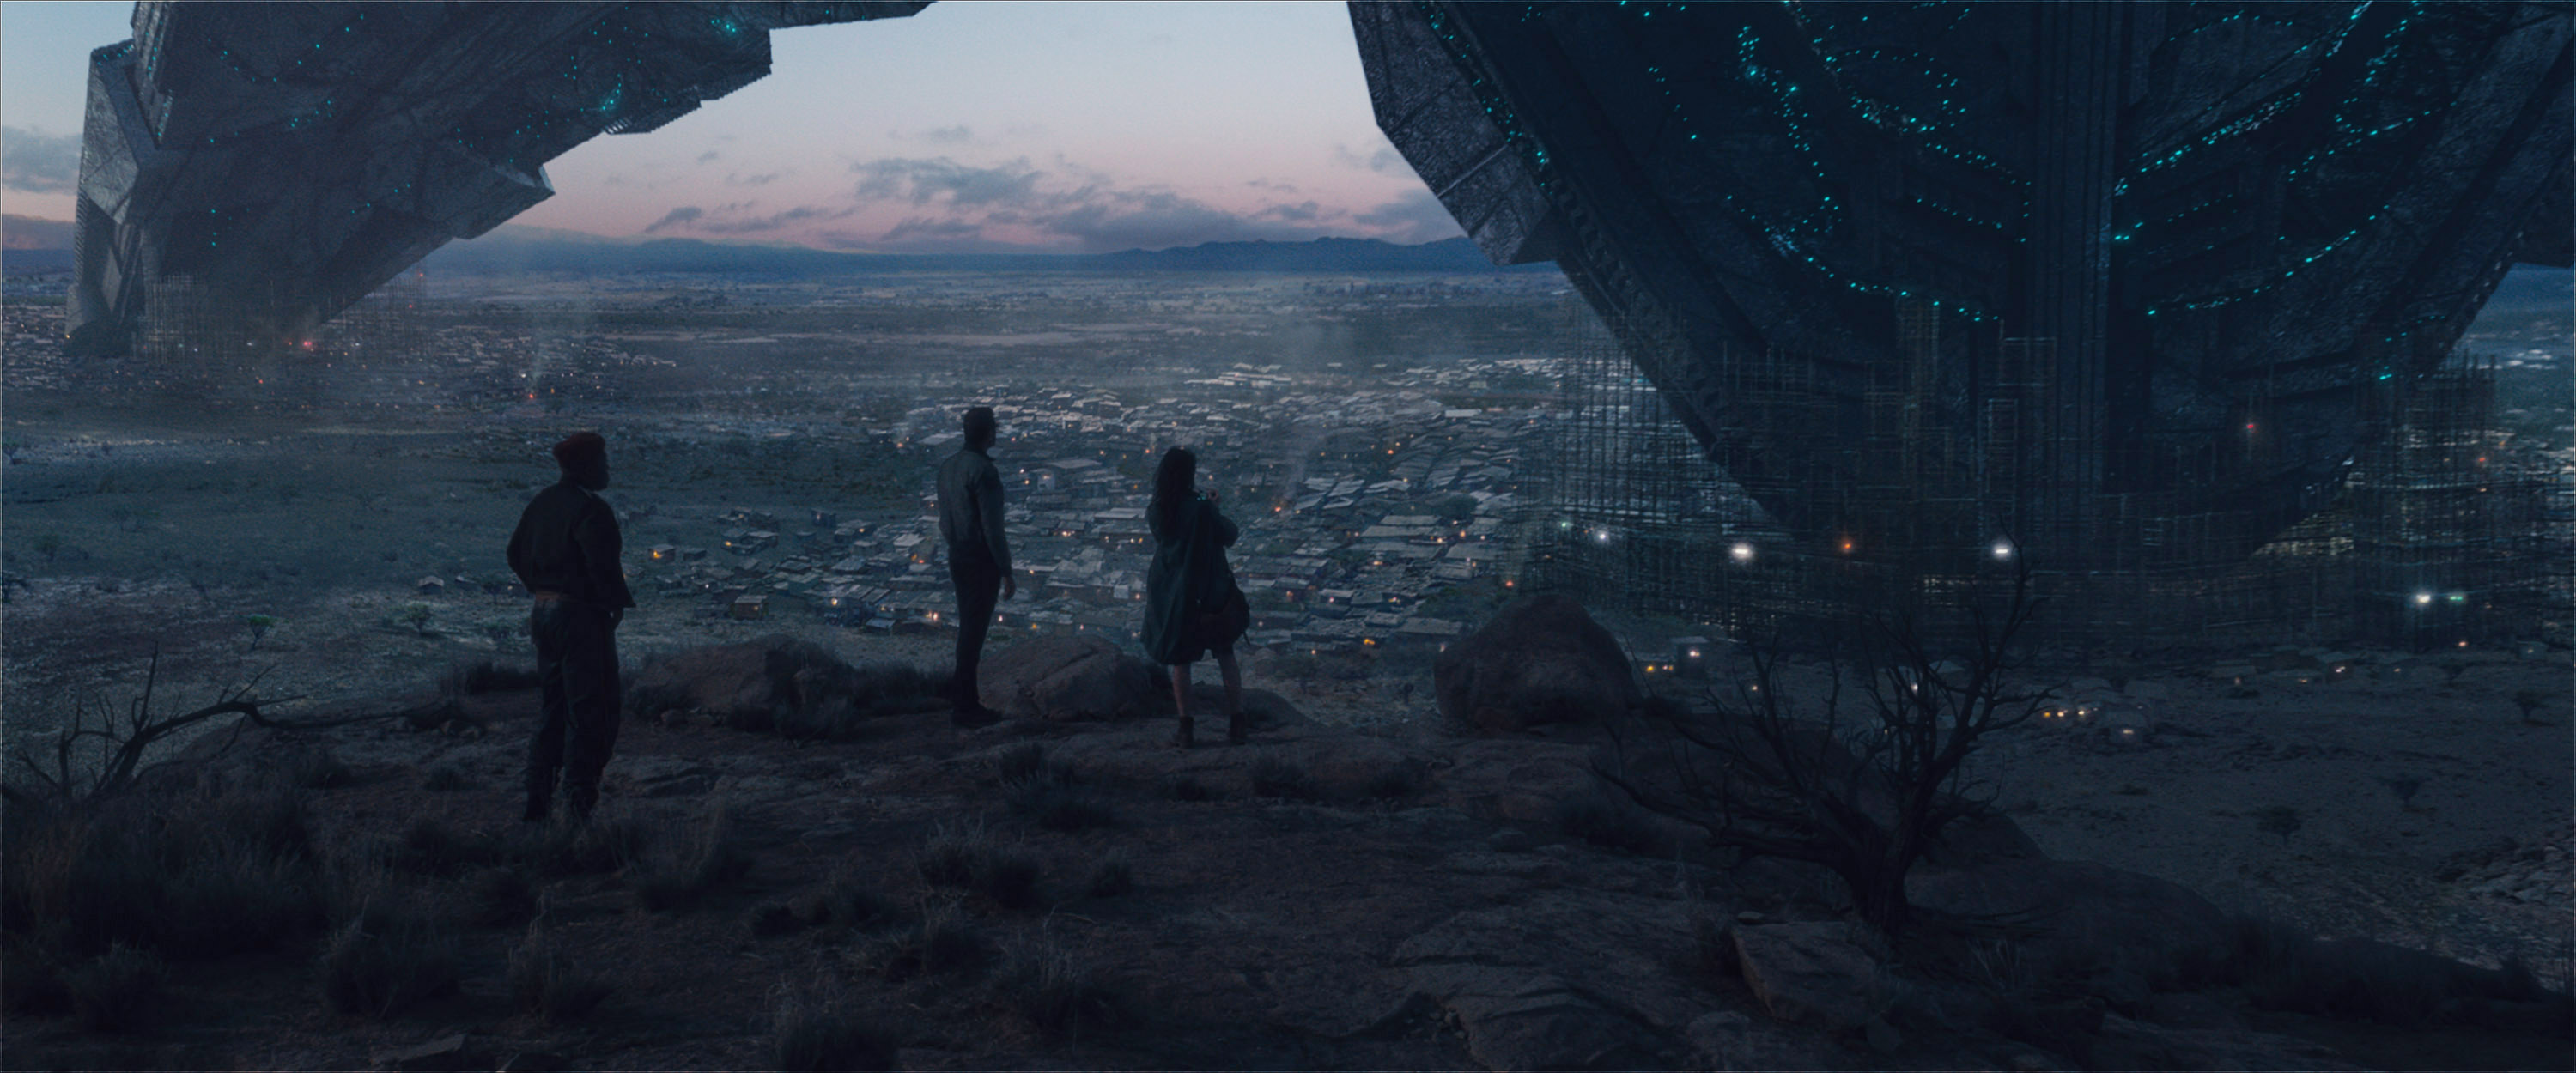 independence-day-resurgence-ID2_TR1_000_0030_ref_still-comp-01094_v0013r_rgb-copy